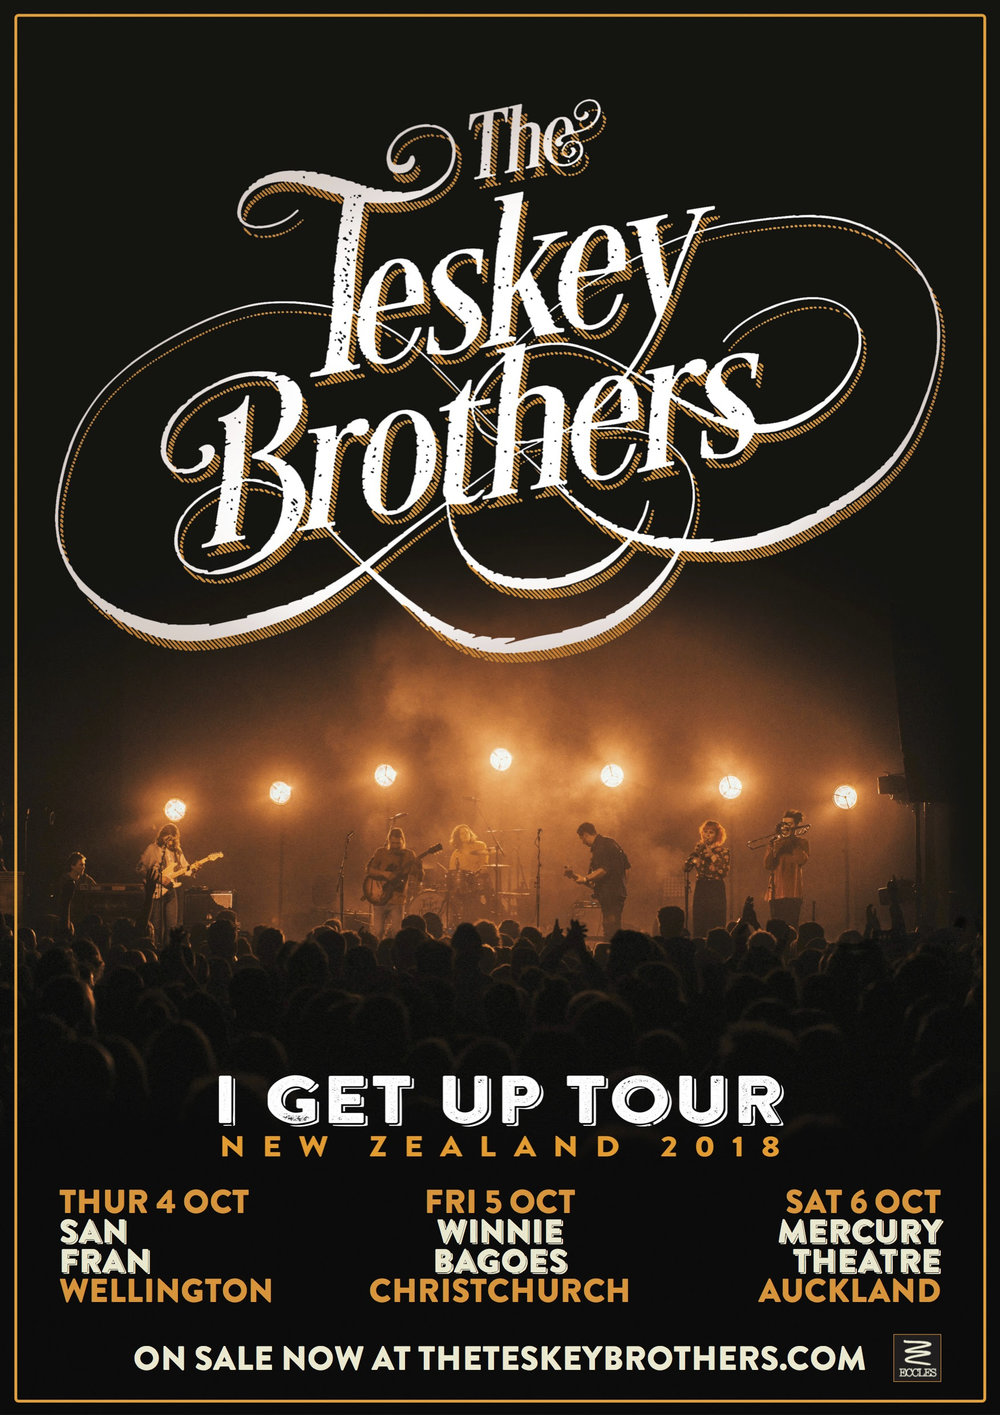 Tickets go on sale Thursday August 23 at 12.00pm from   www.theteskeybrothers.com